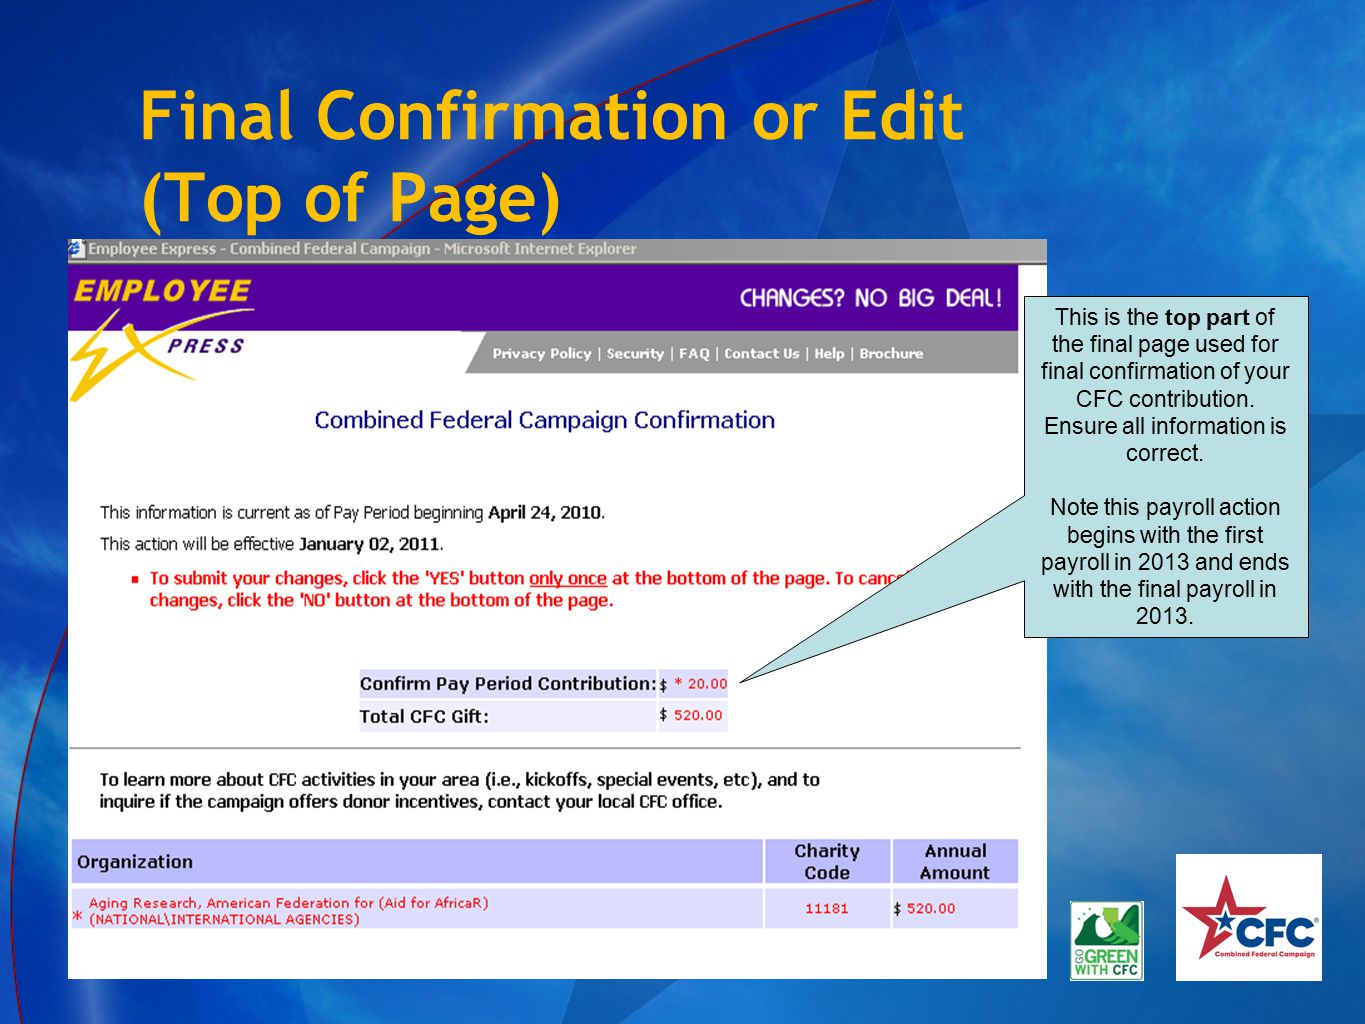 Final Confirmation or Edit (Top of Page) This is the top part of the final page used for final confirmation of your CFC contribution. Ensure all infor